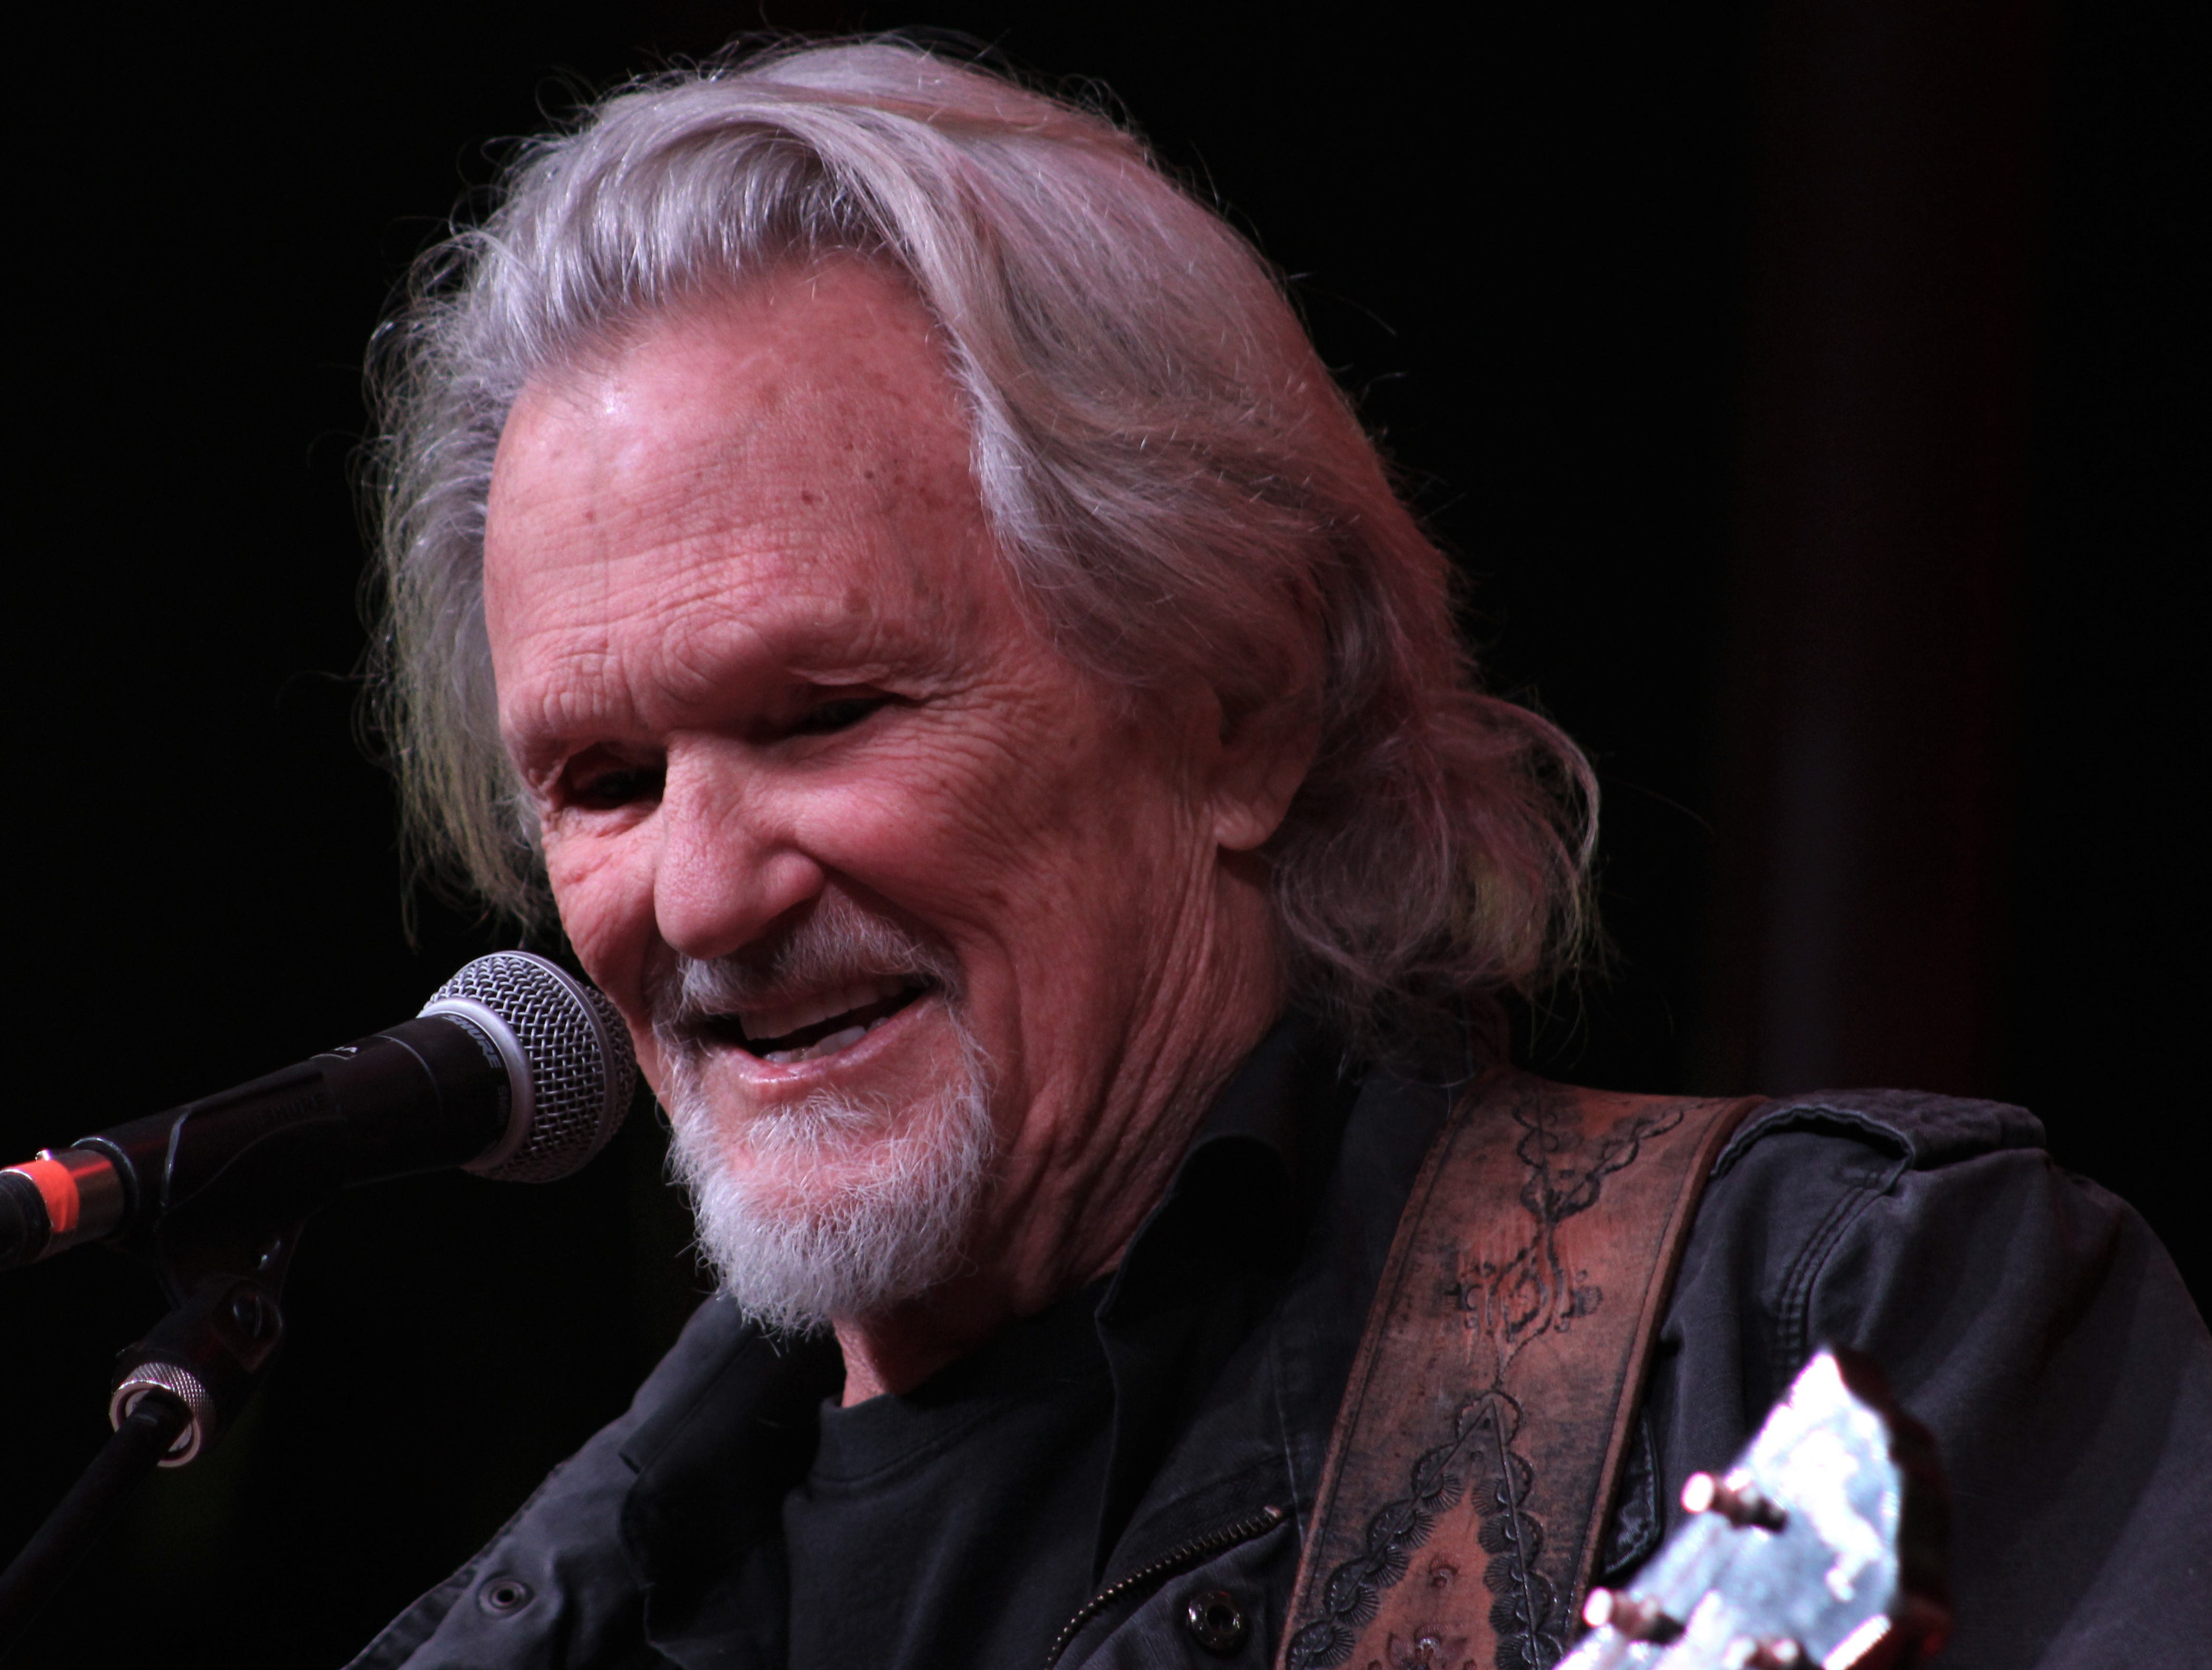 Kris Kristofferson headlined Saturday evening March 23, 2019, at the 9th Outlaws & Legends Music Festival.